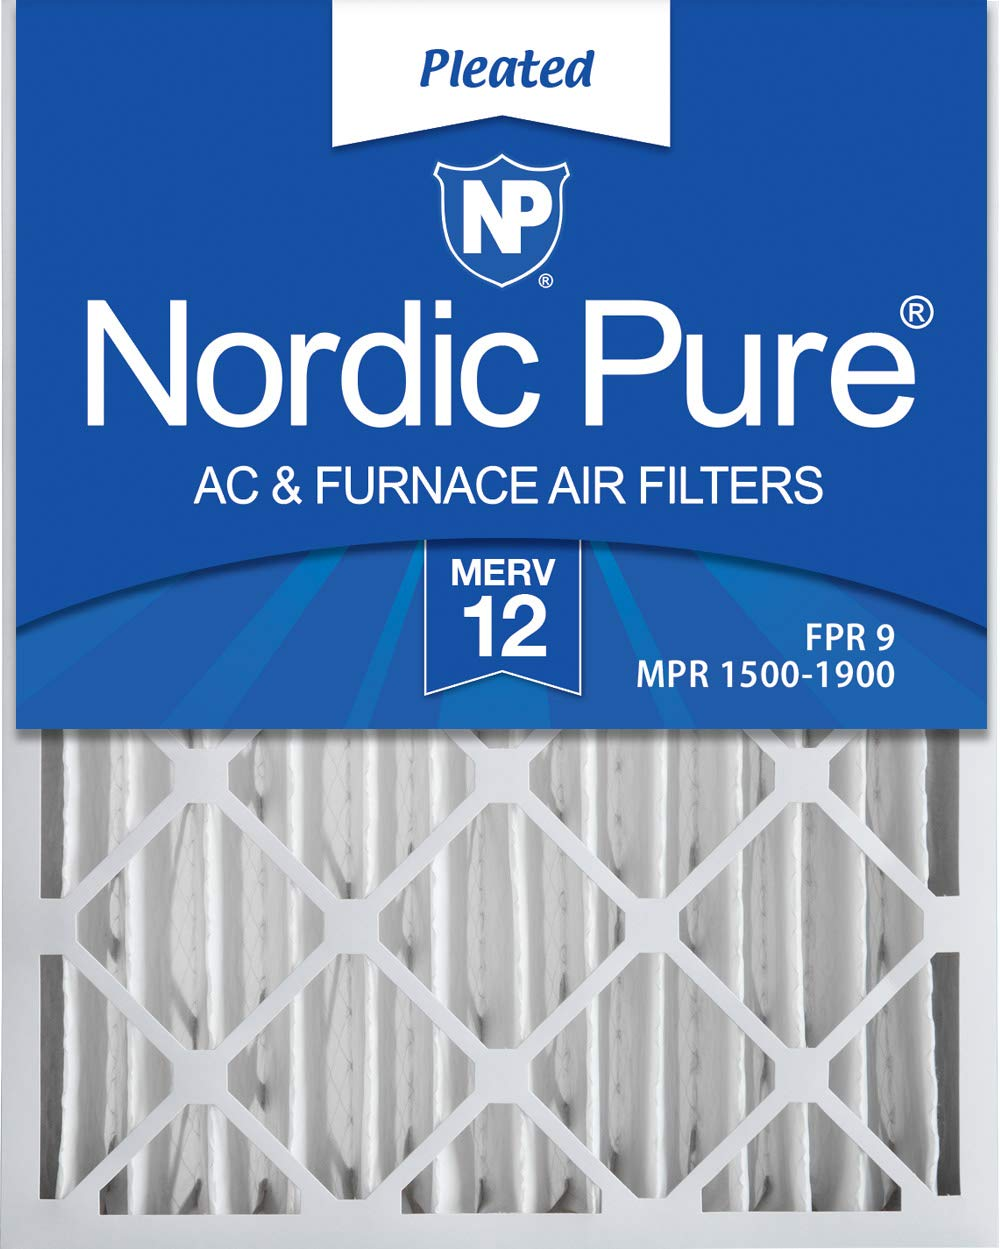 Nordic Pure 20x25x4 (3-5/8 Actual Depth) MERV 12 Pleated AC Furnace Air Filters, Box of 2 by Nordic Pure